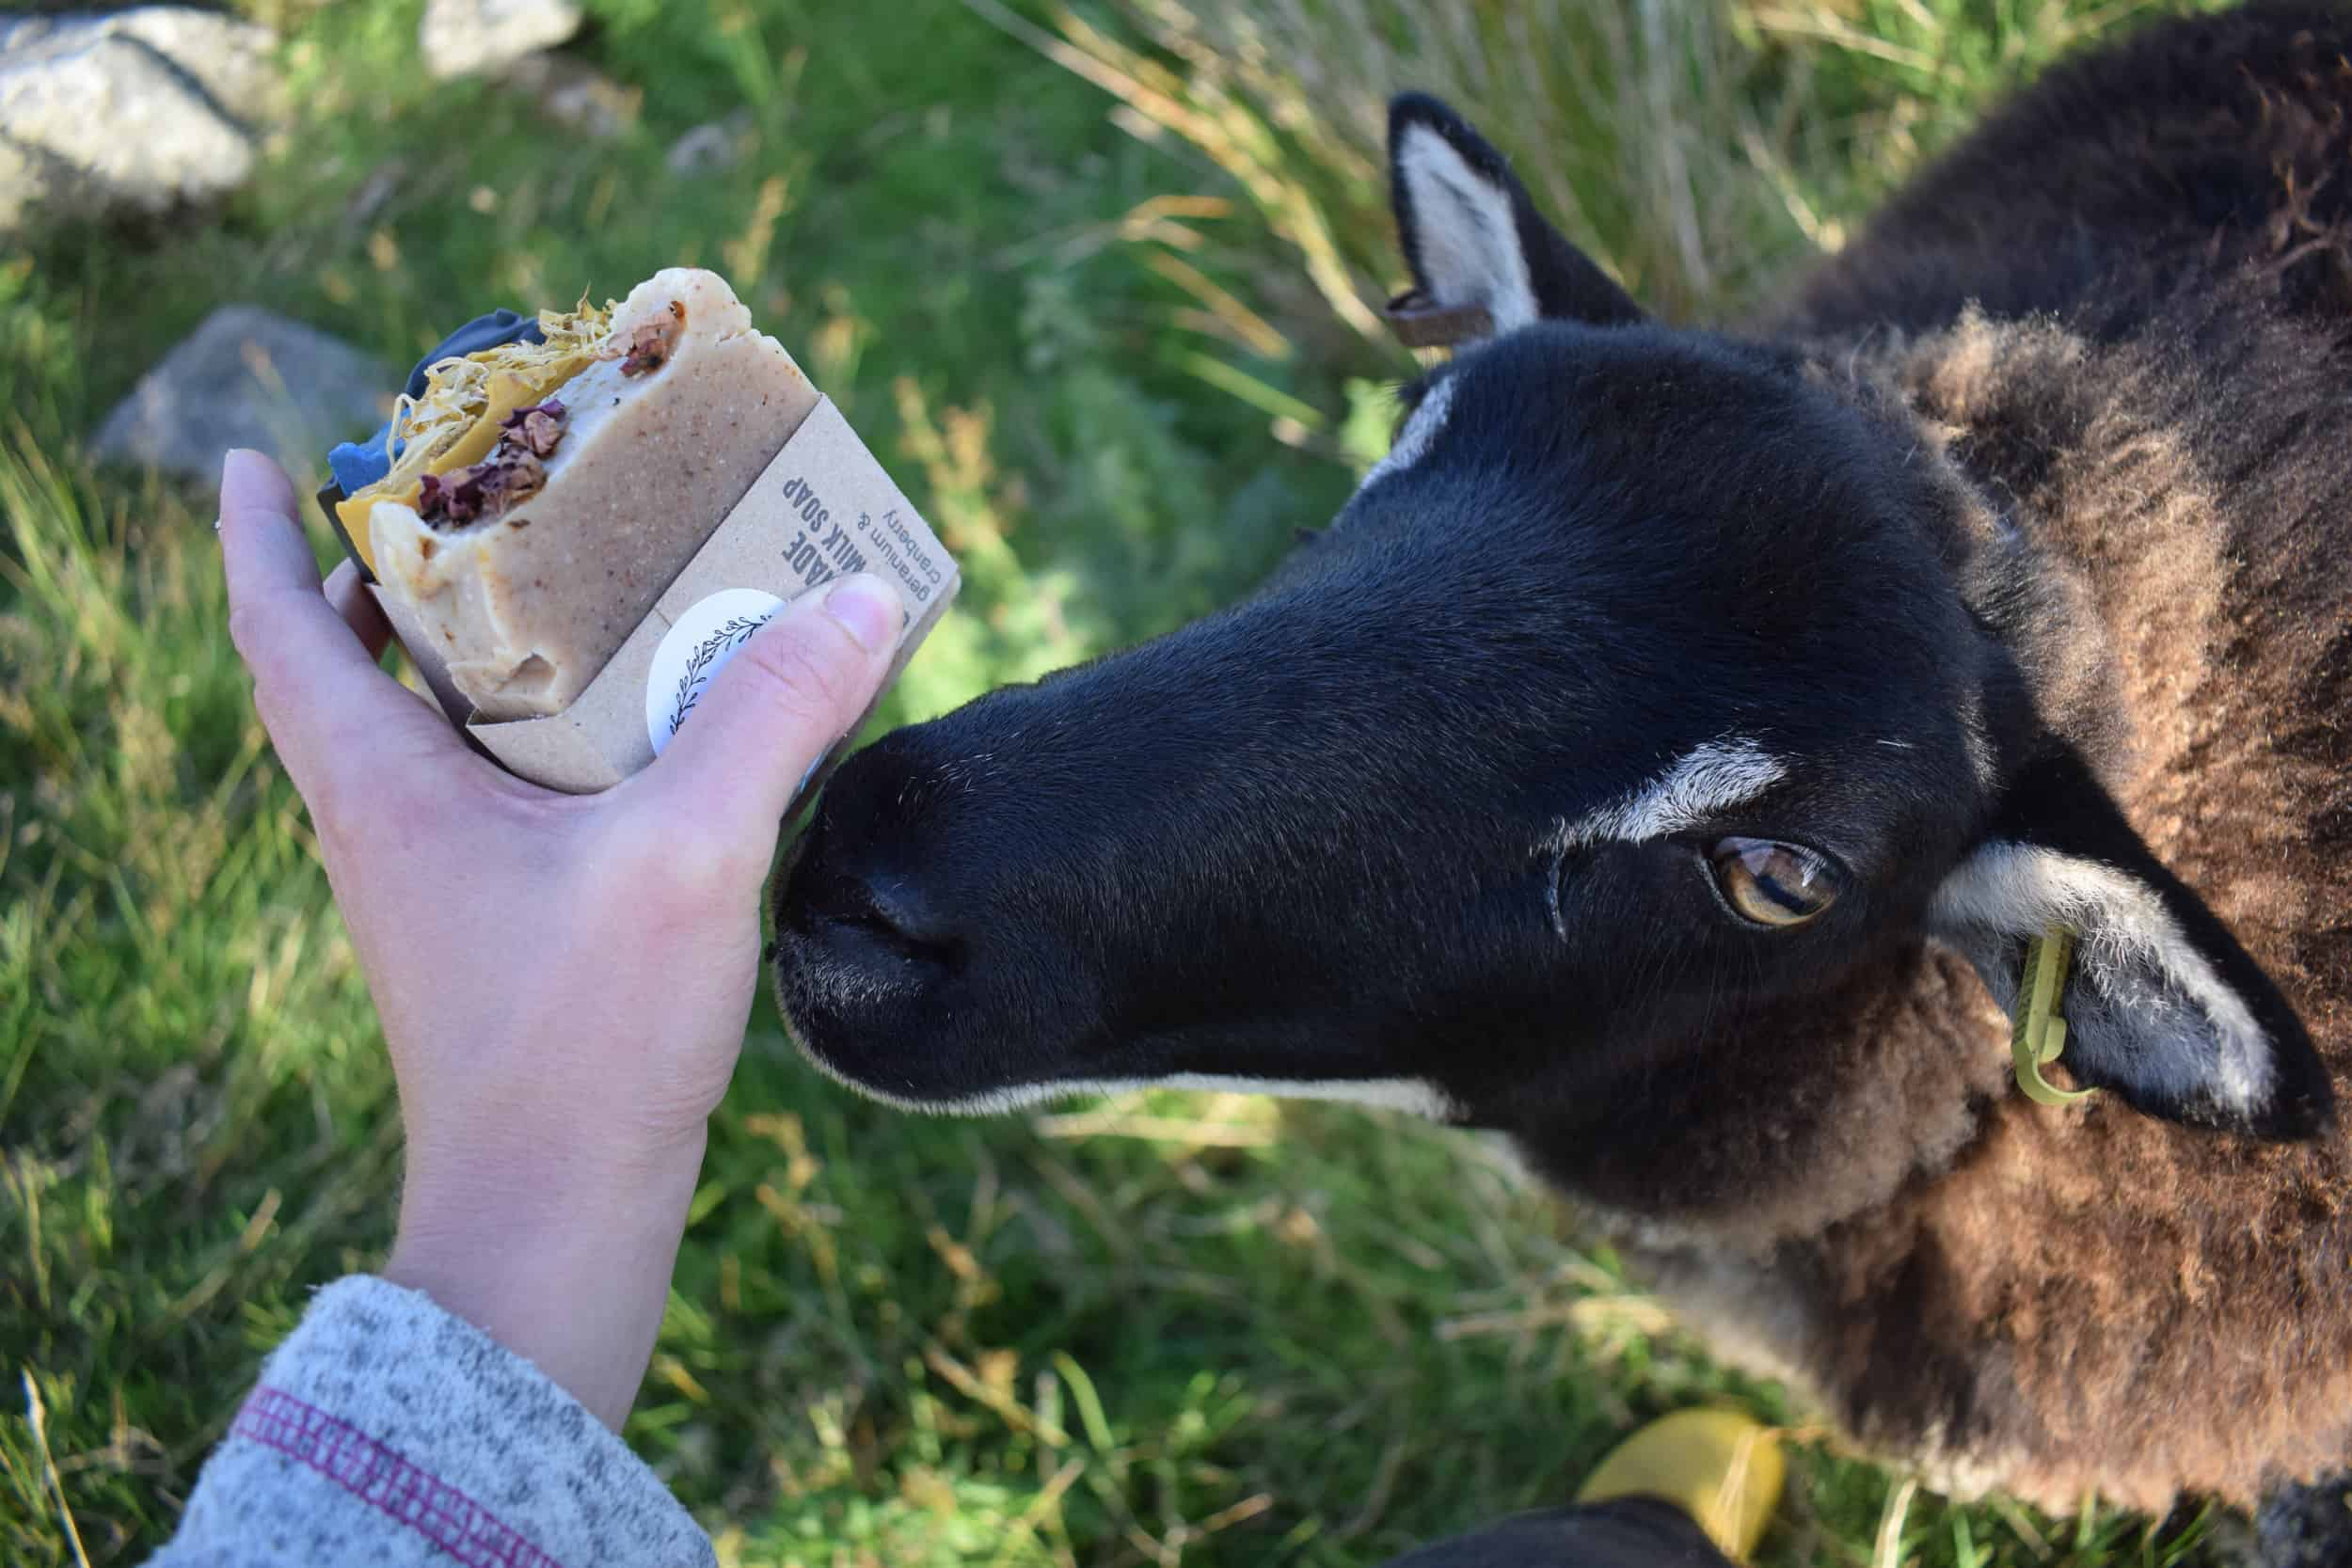 Pepsi mouflon icelandic cross sheep soay goat soap 1